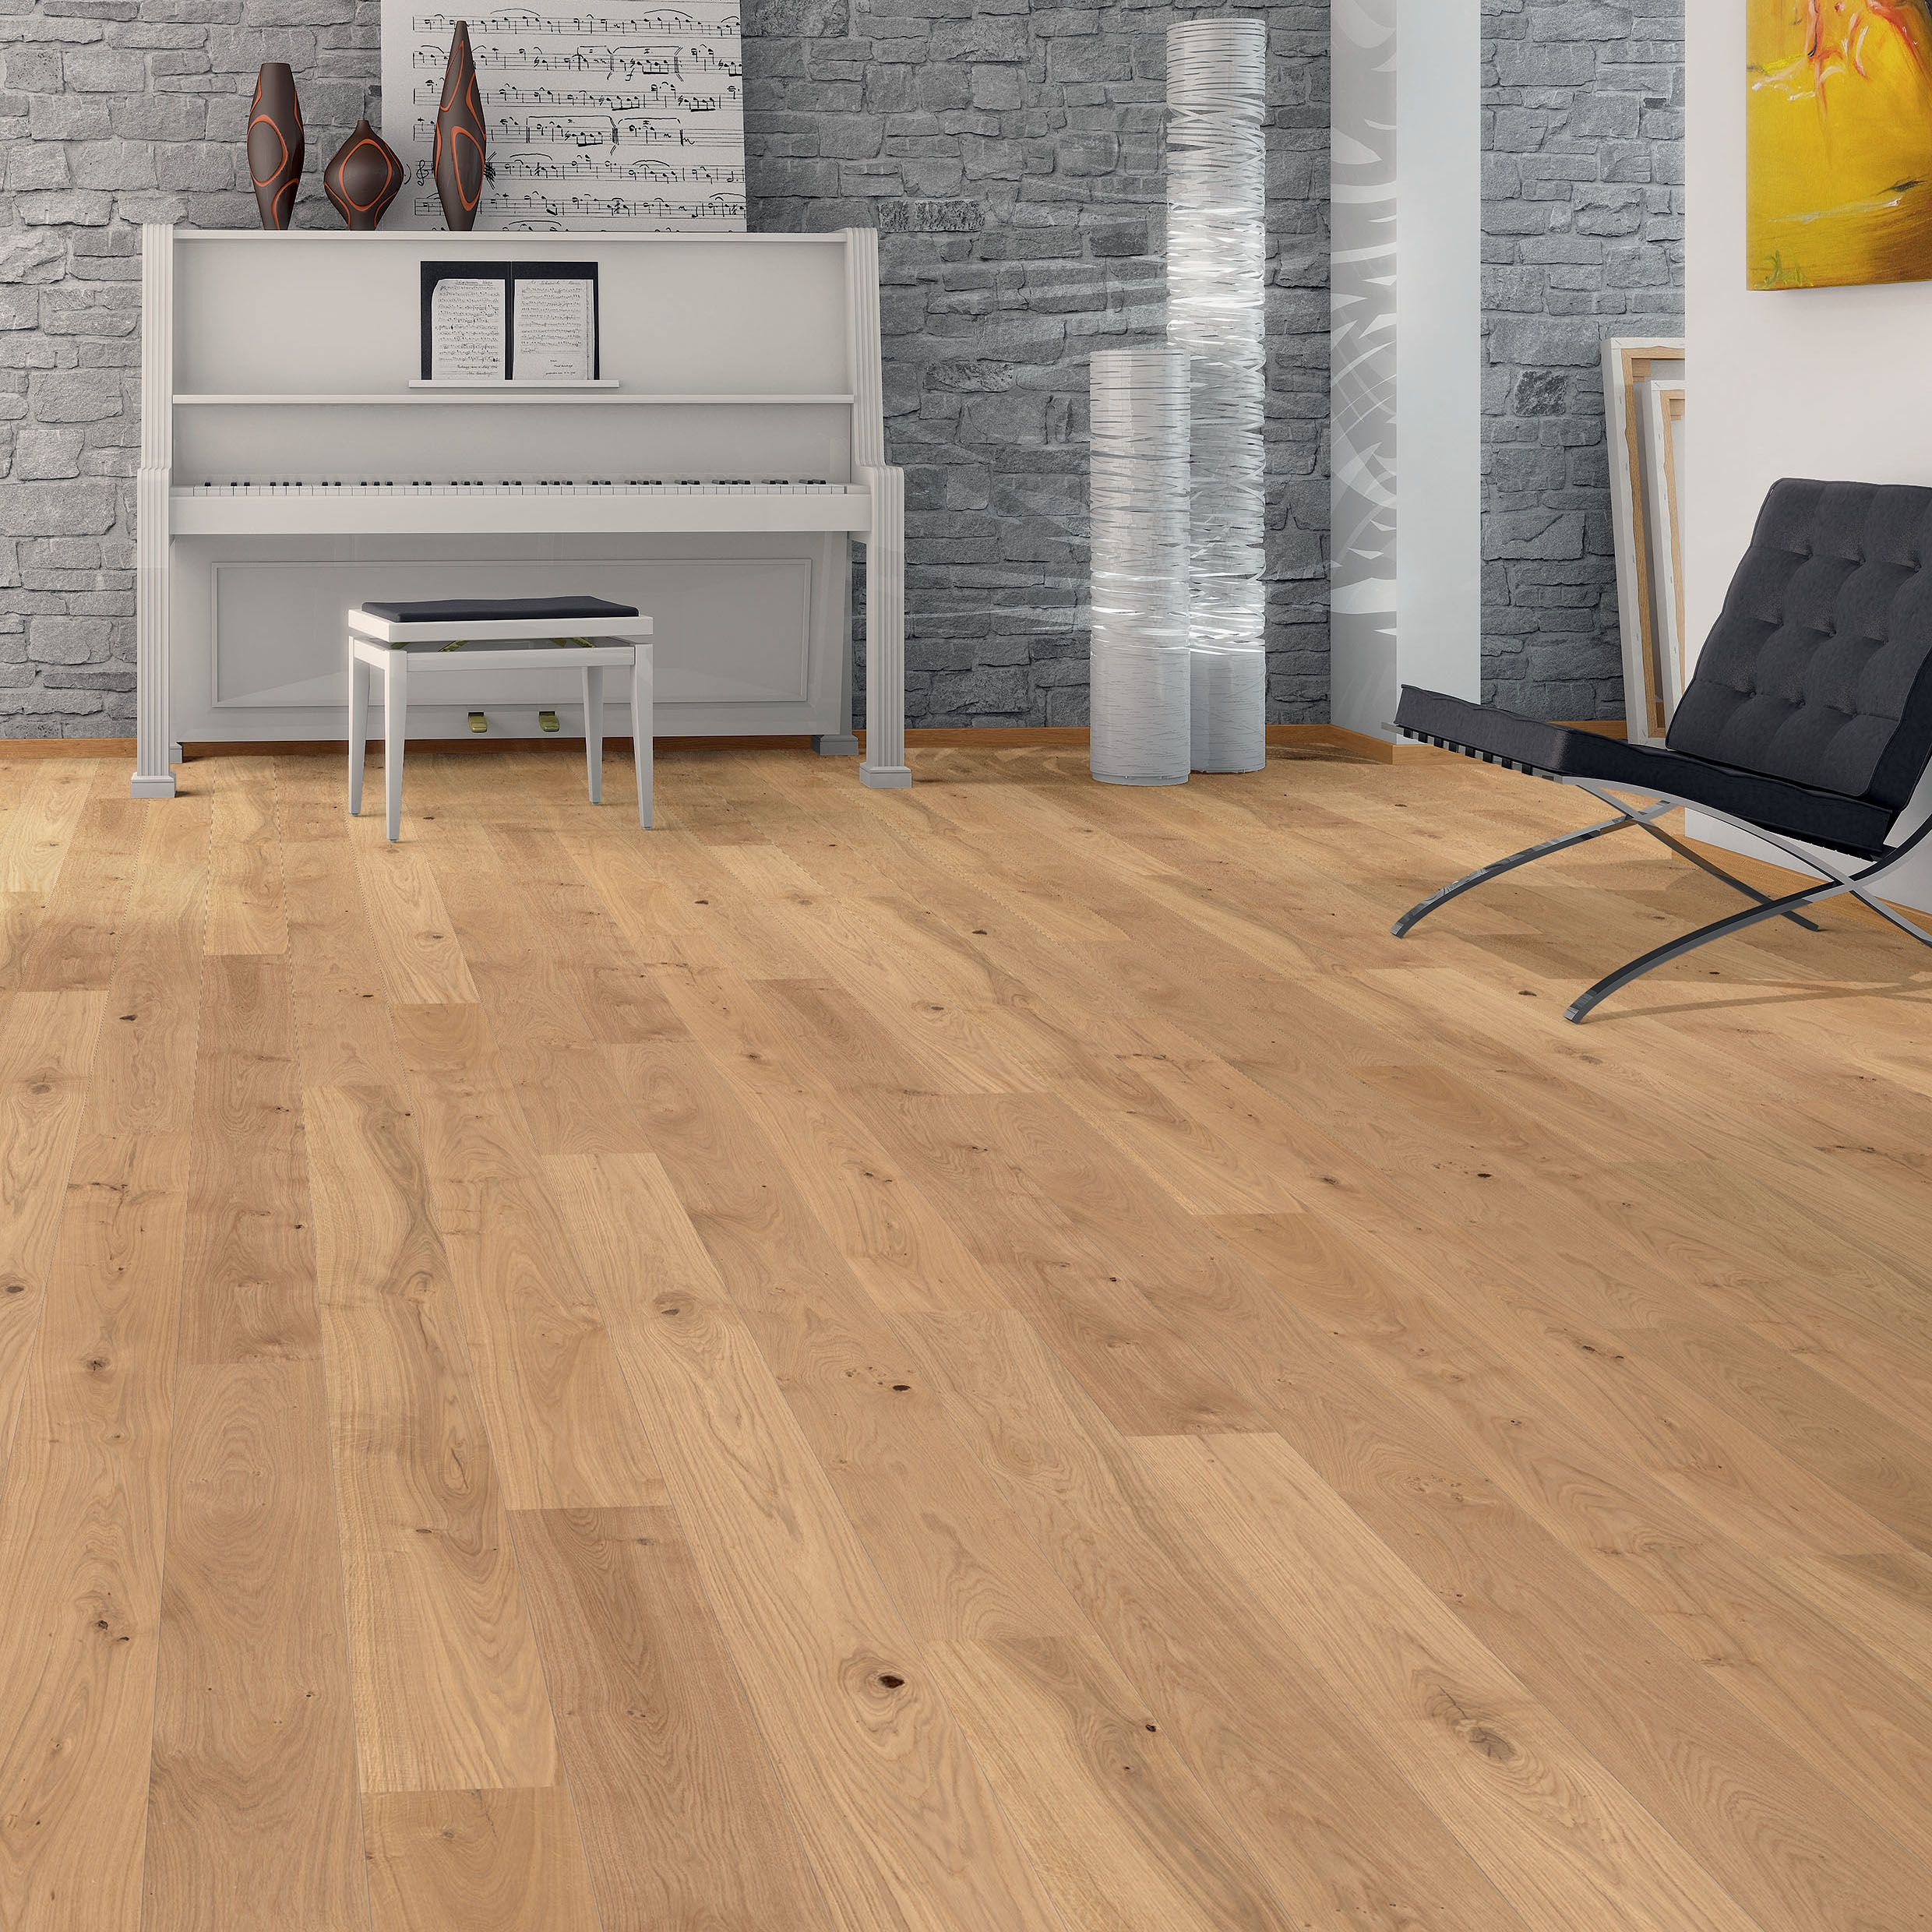 Dielenboden Kueche Erfahrungen Colours Monito Natural Oak Effect Wood Top Layer Flooring